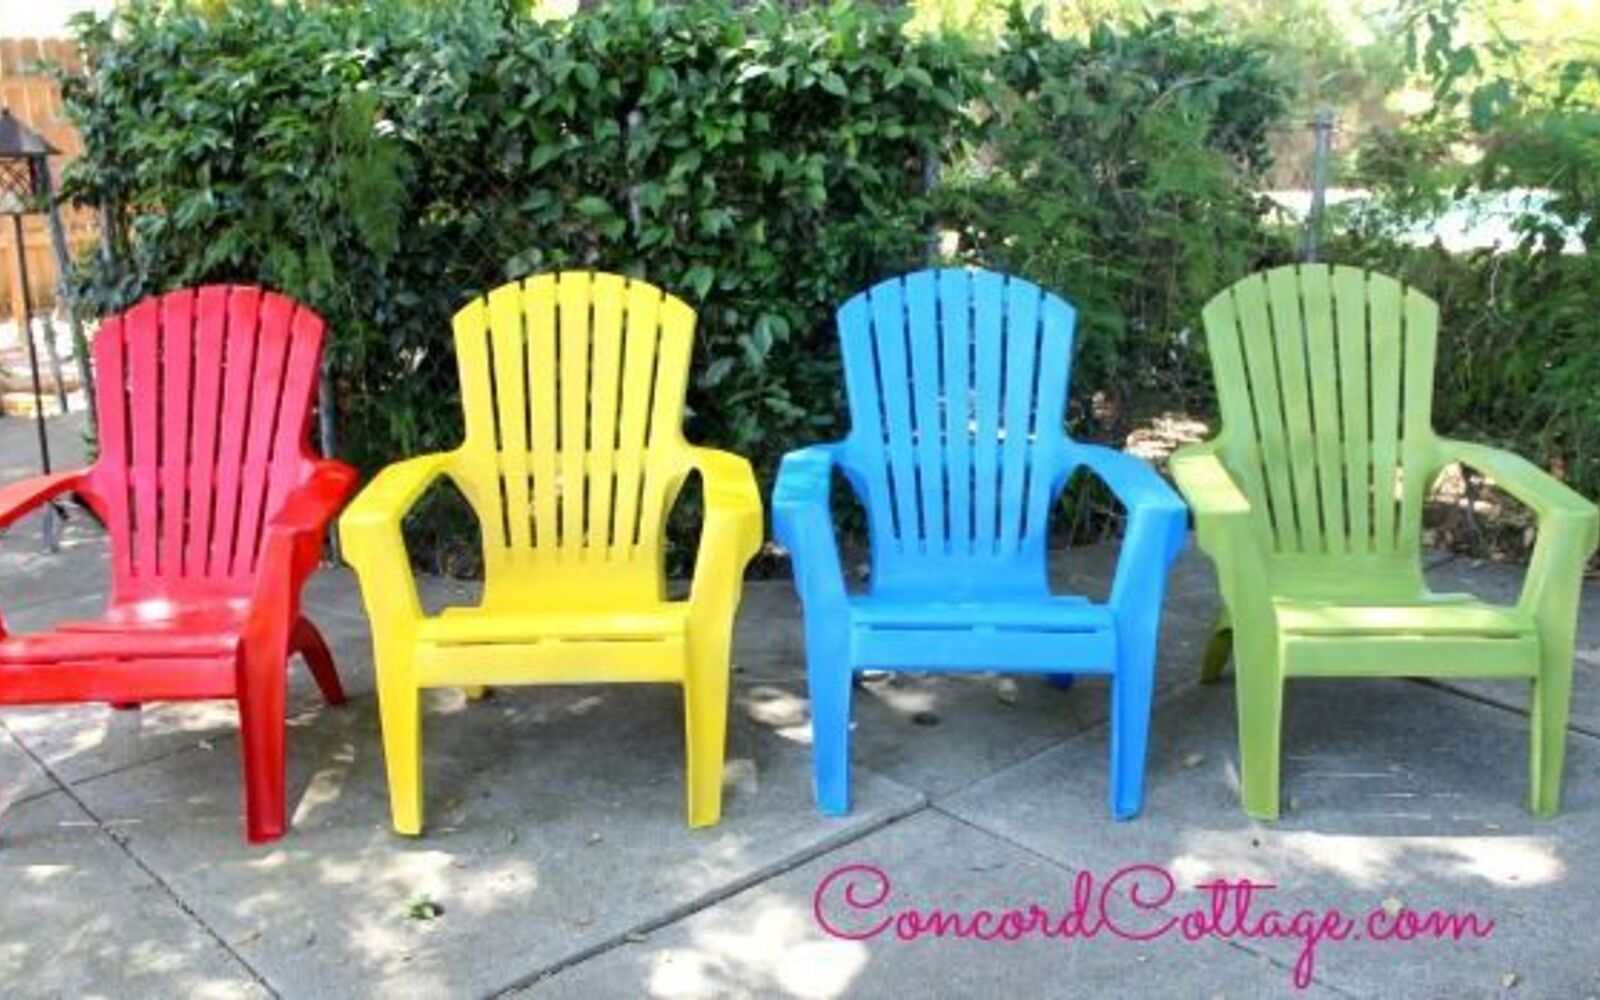 s upgrade your backyard with these 30 clever ideas, Paint your plain plastic chairs